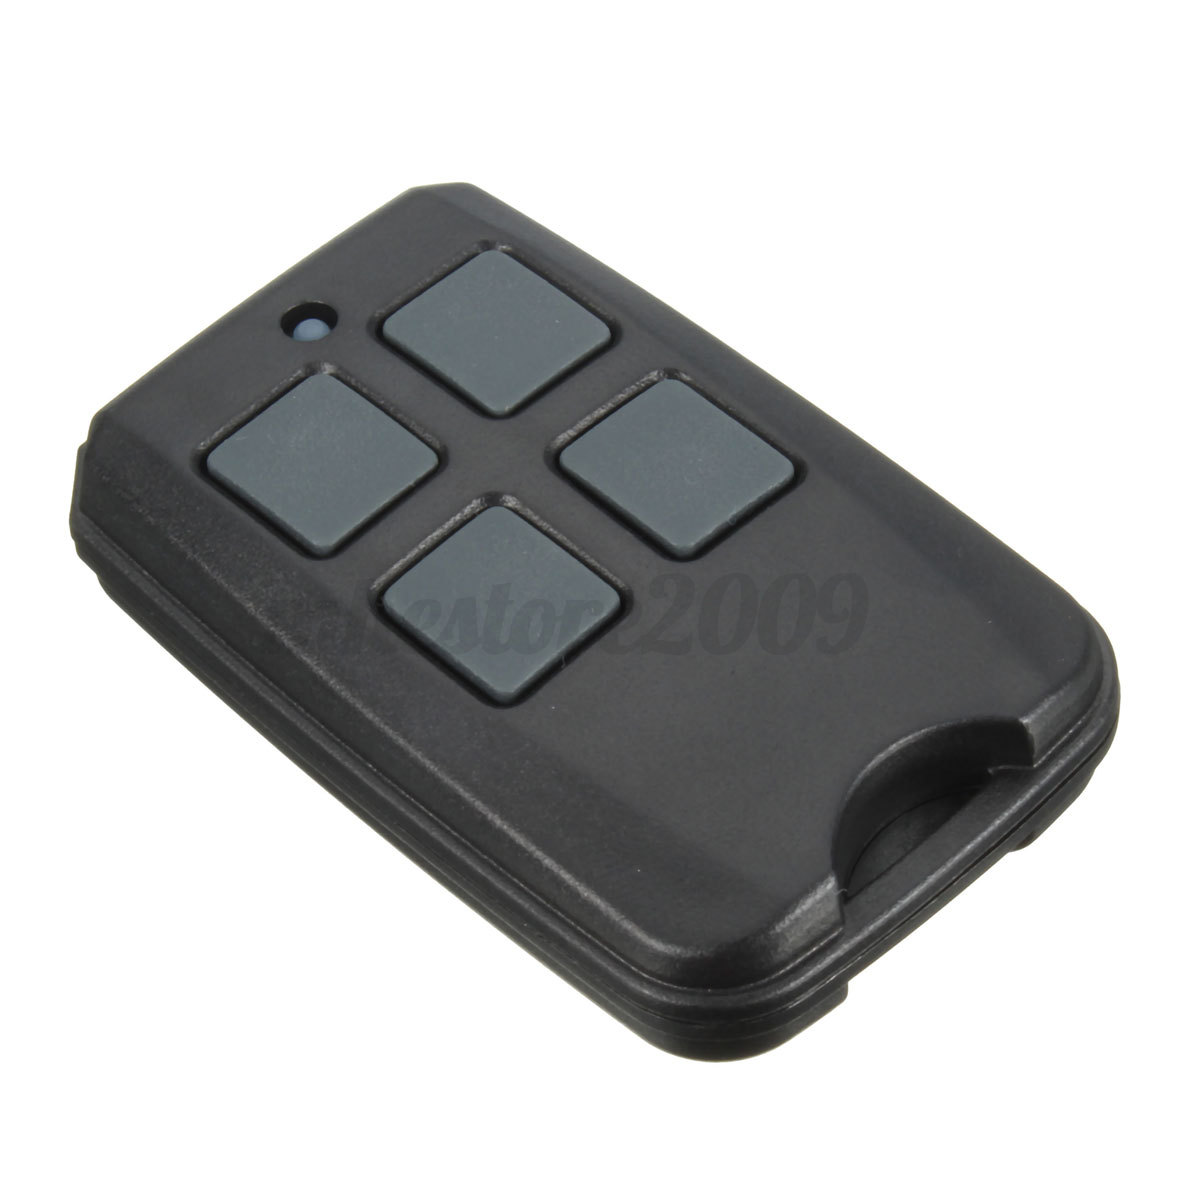 4 Cahnnels 315 390 Mhz Garage Door Remote Control For G3t